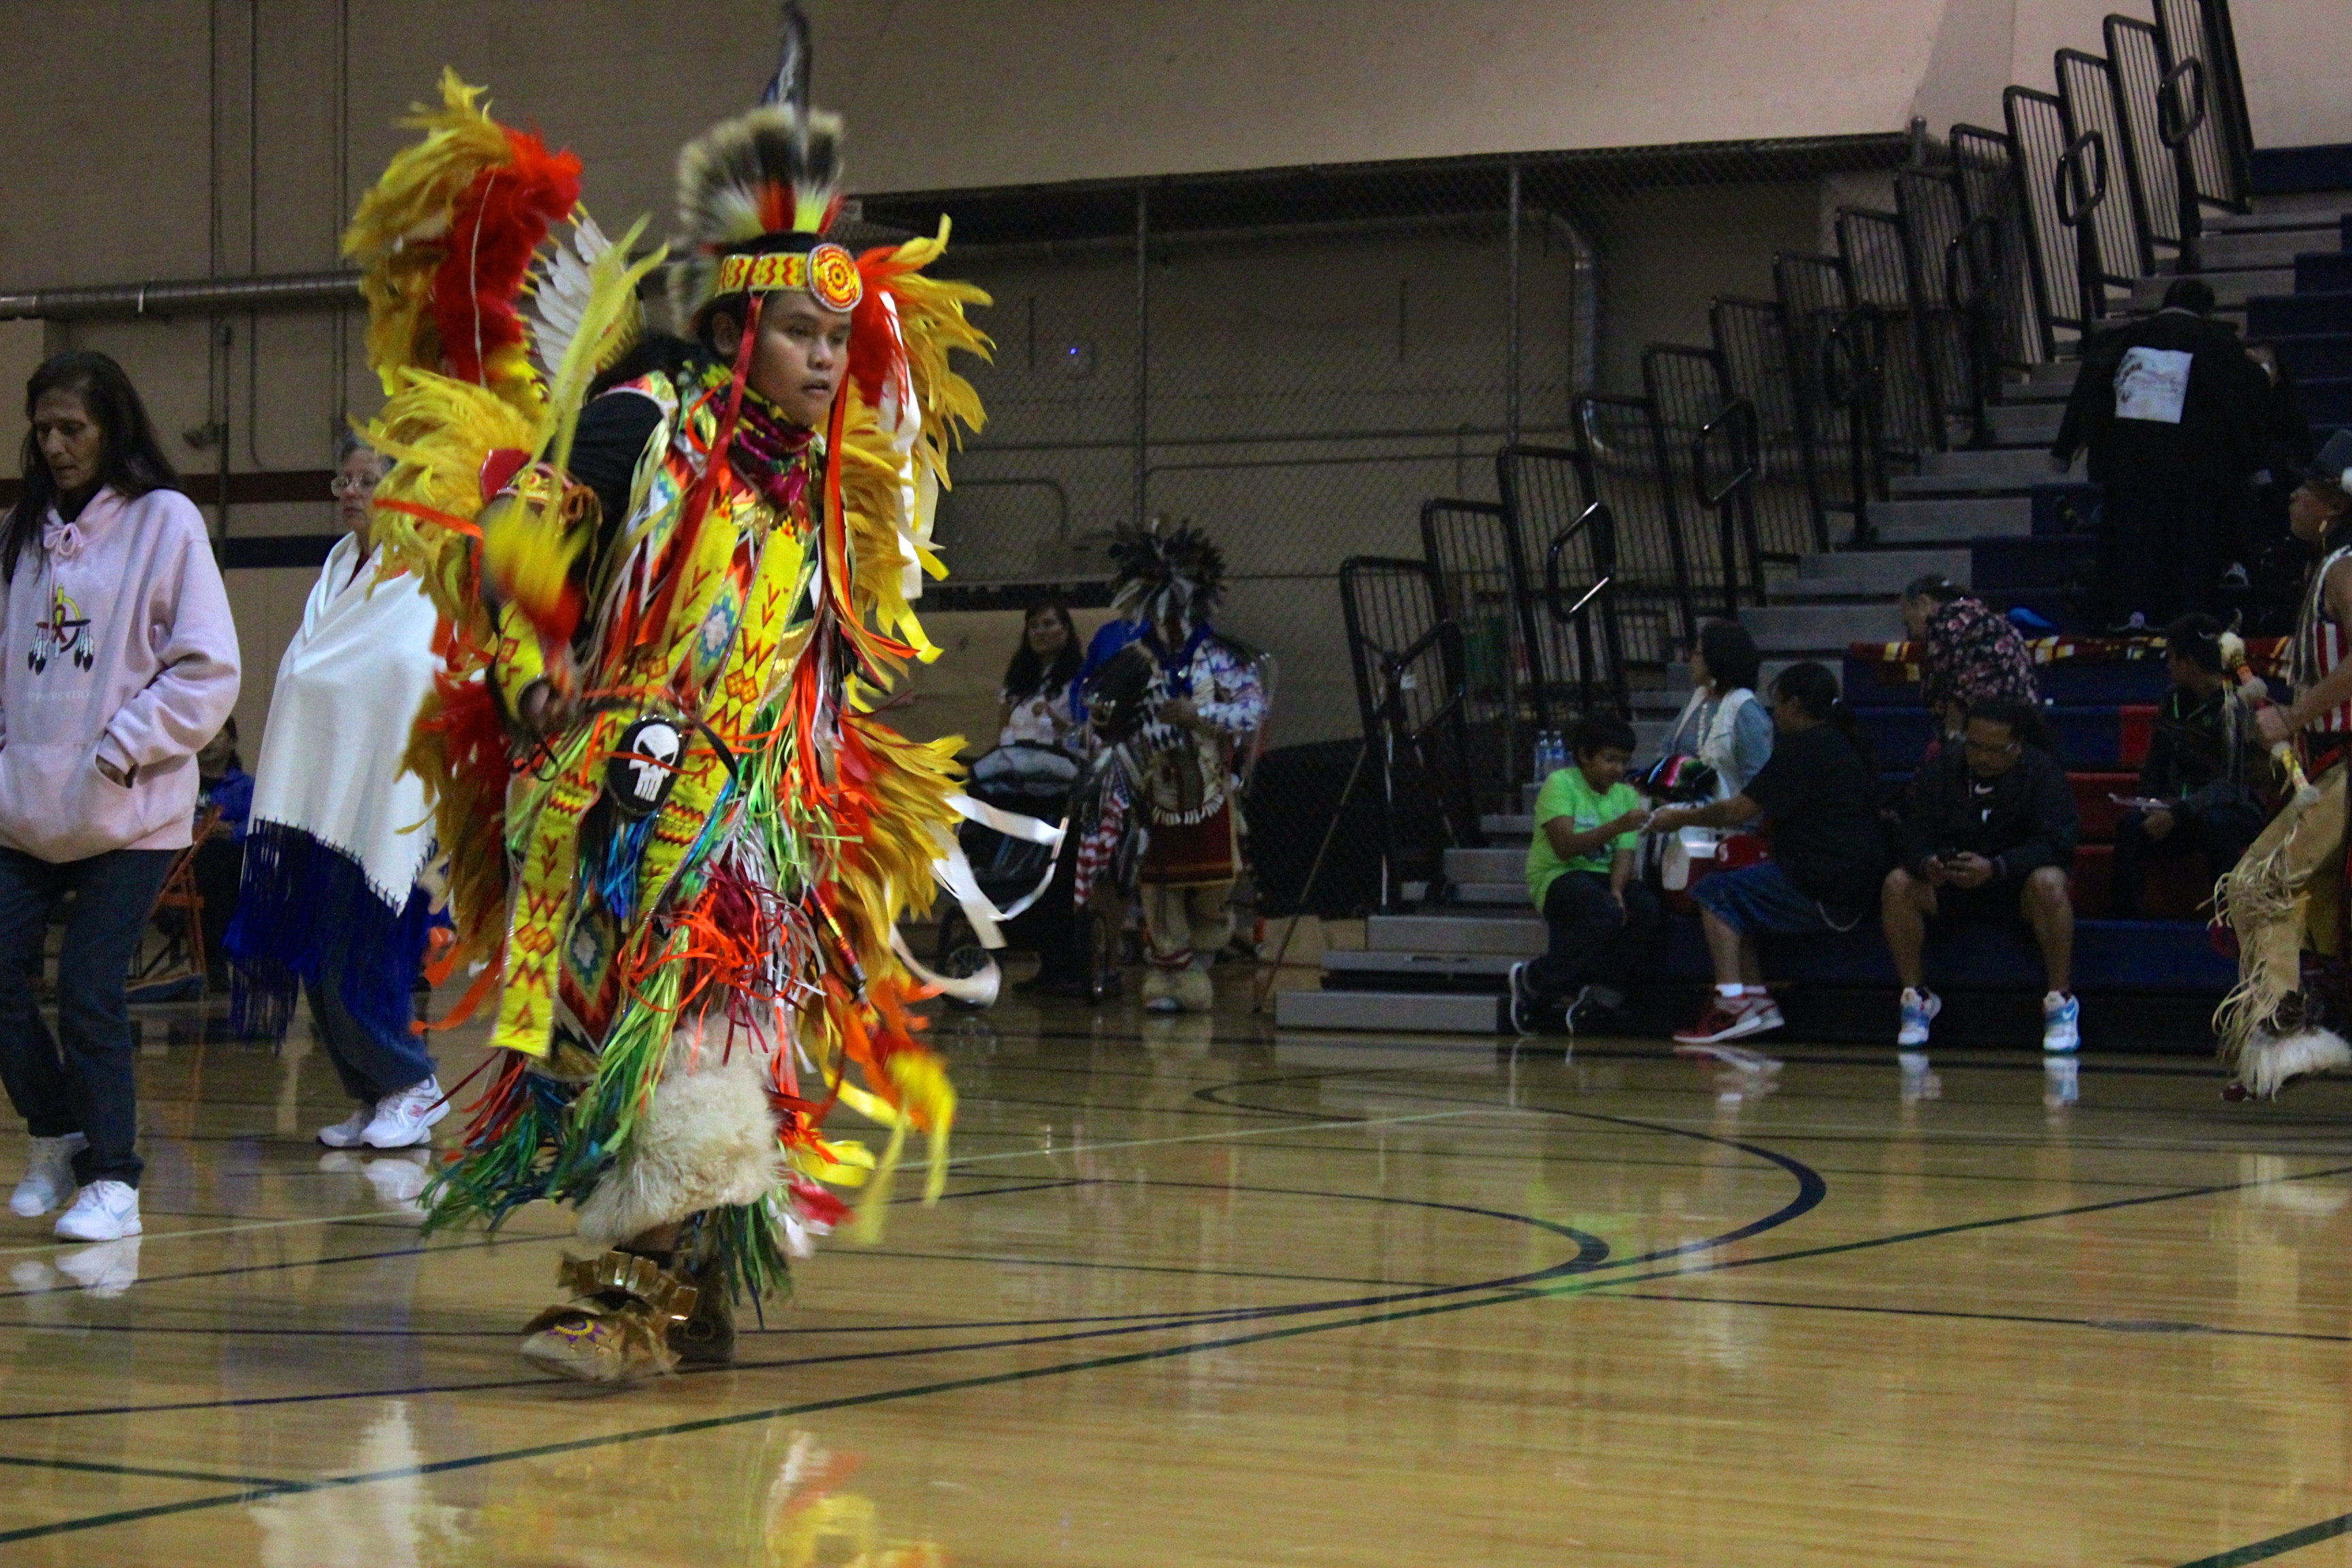 Reporter visits Native American powwows